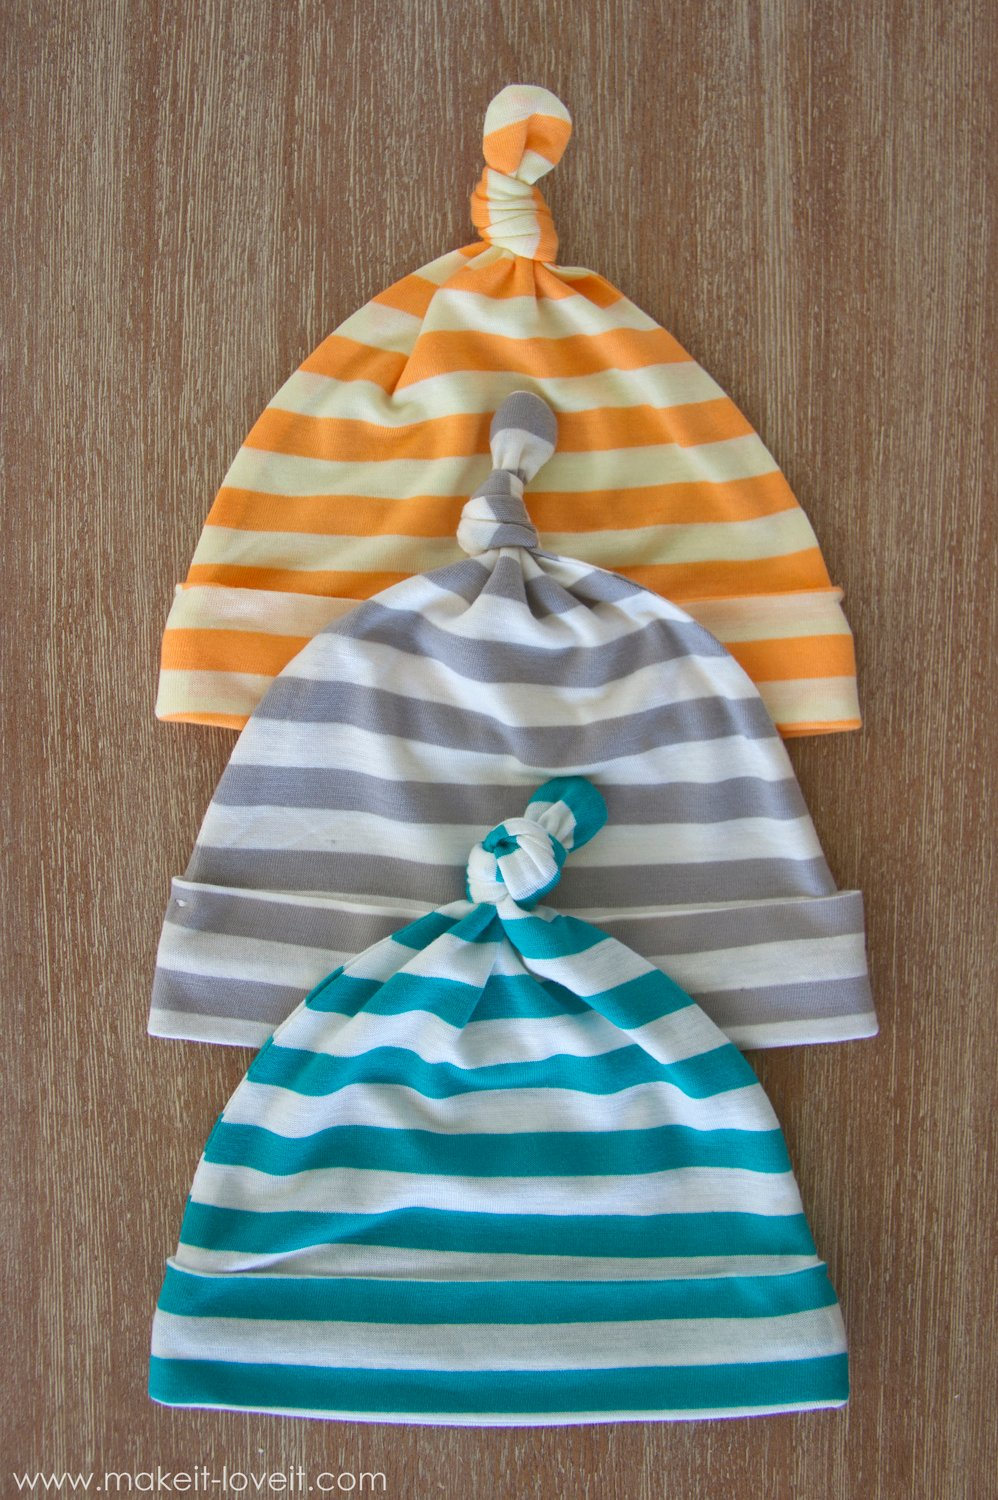 Stretchy Baby Hats with Top Knots --- Make It and Love It